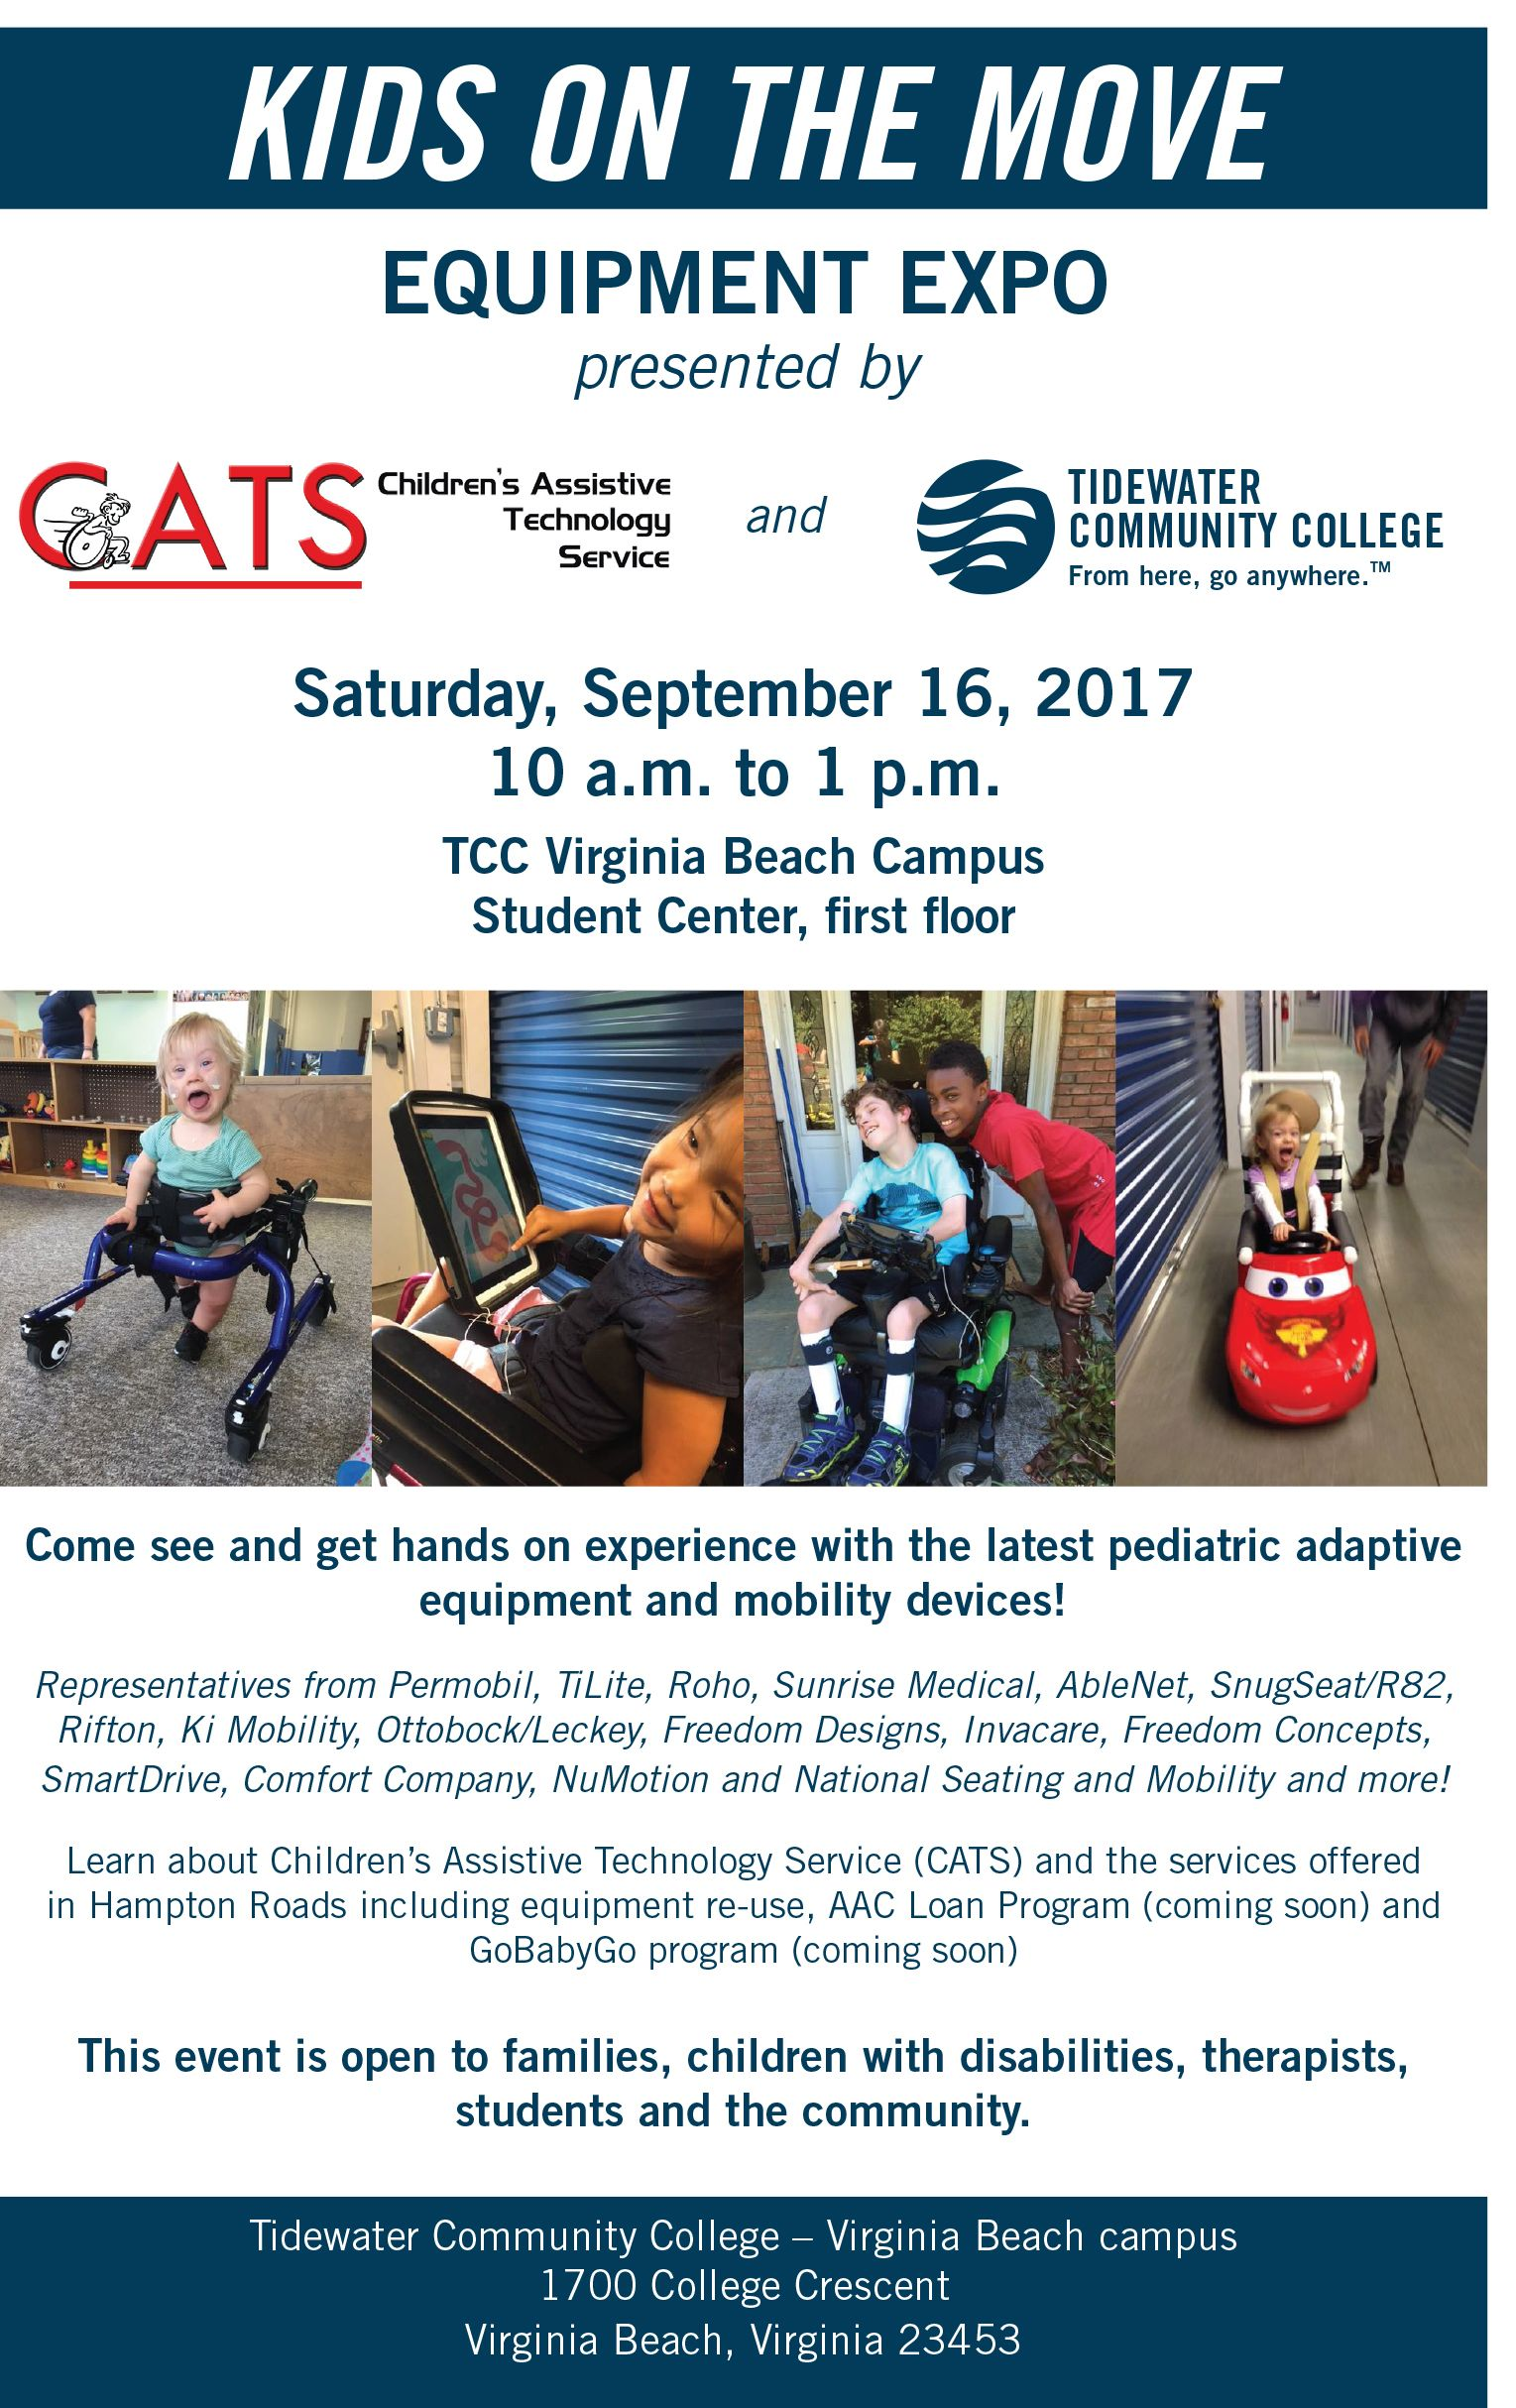 For Those Of You With Children Who Have Mobility Concerns Kids On The Move Equipment Expo Http Amp Gs Ph3a Kids Moving Expo